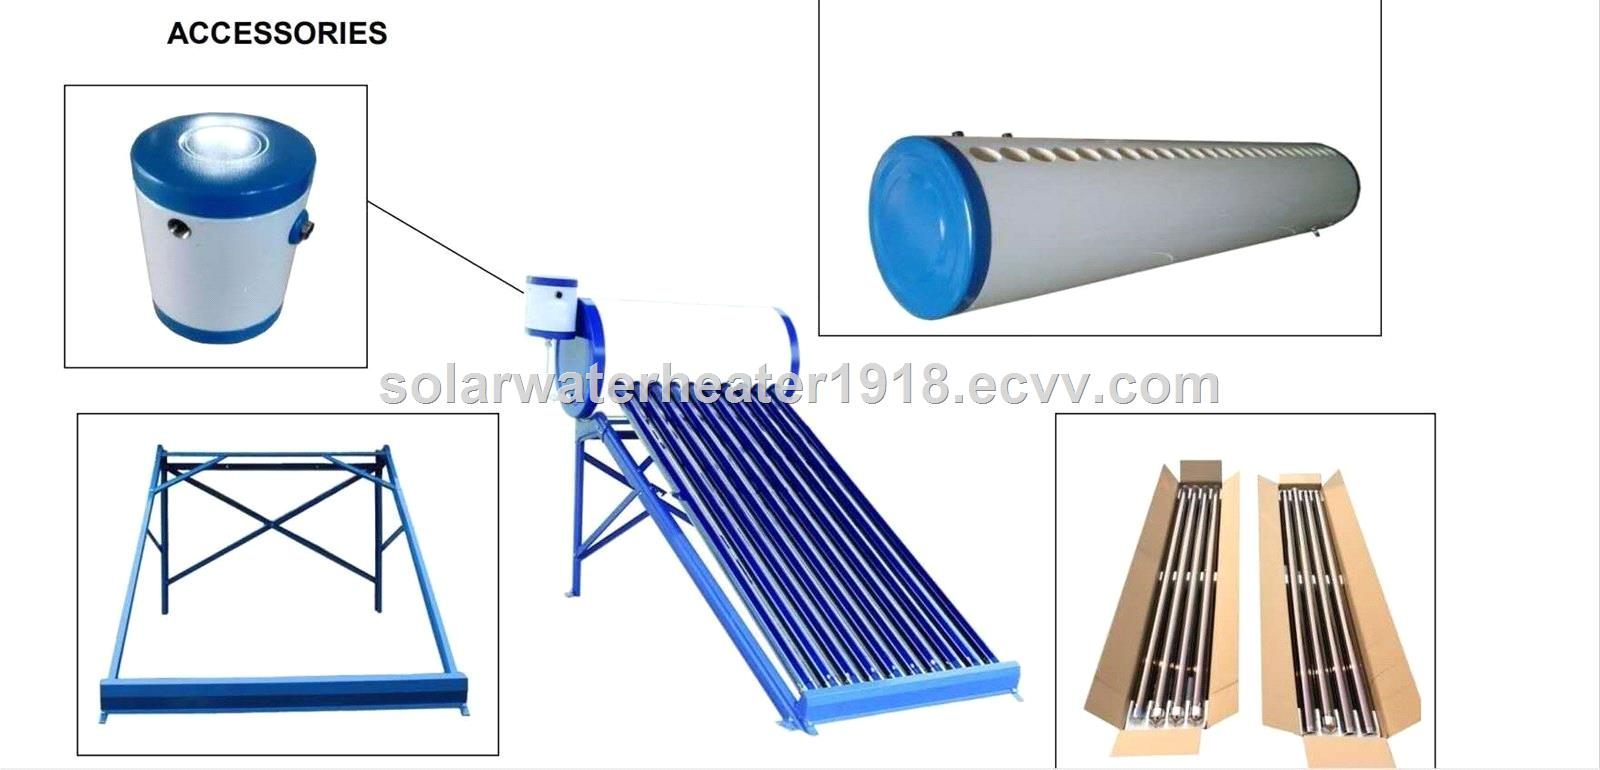 very good quality and good price China solar water heater